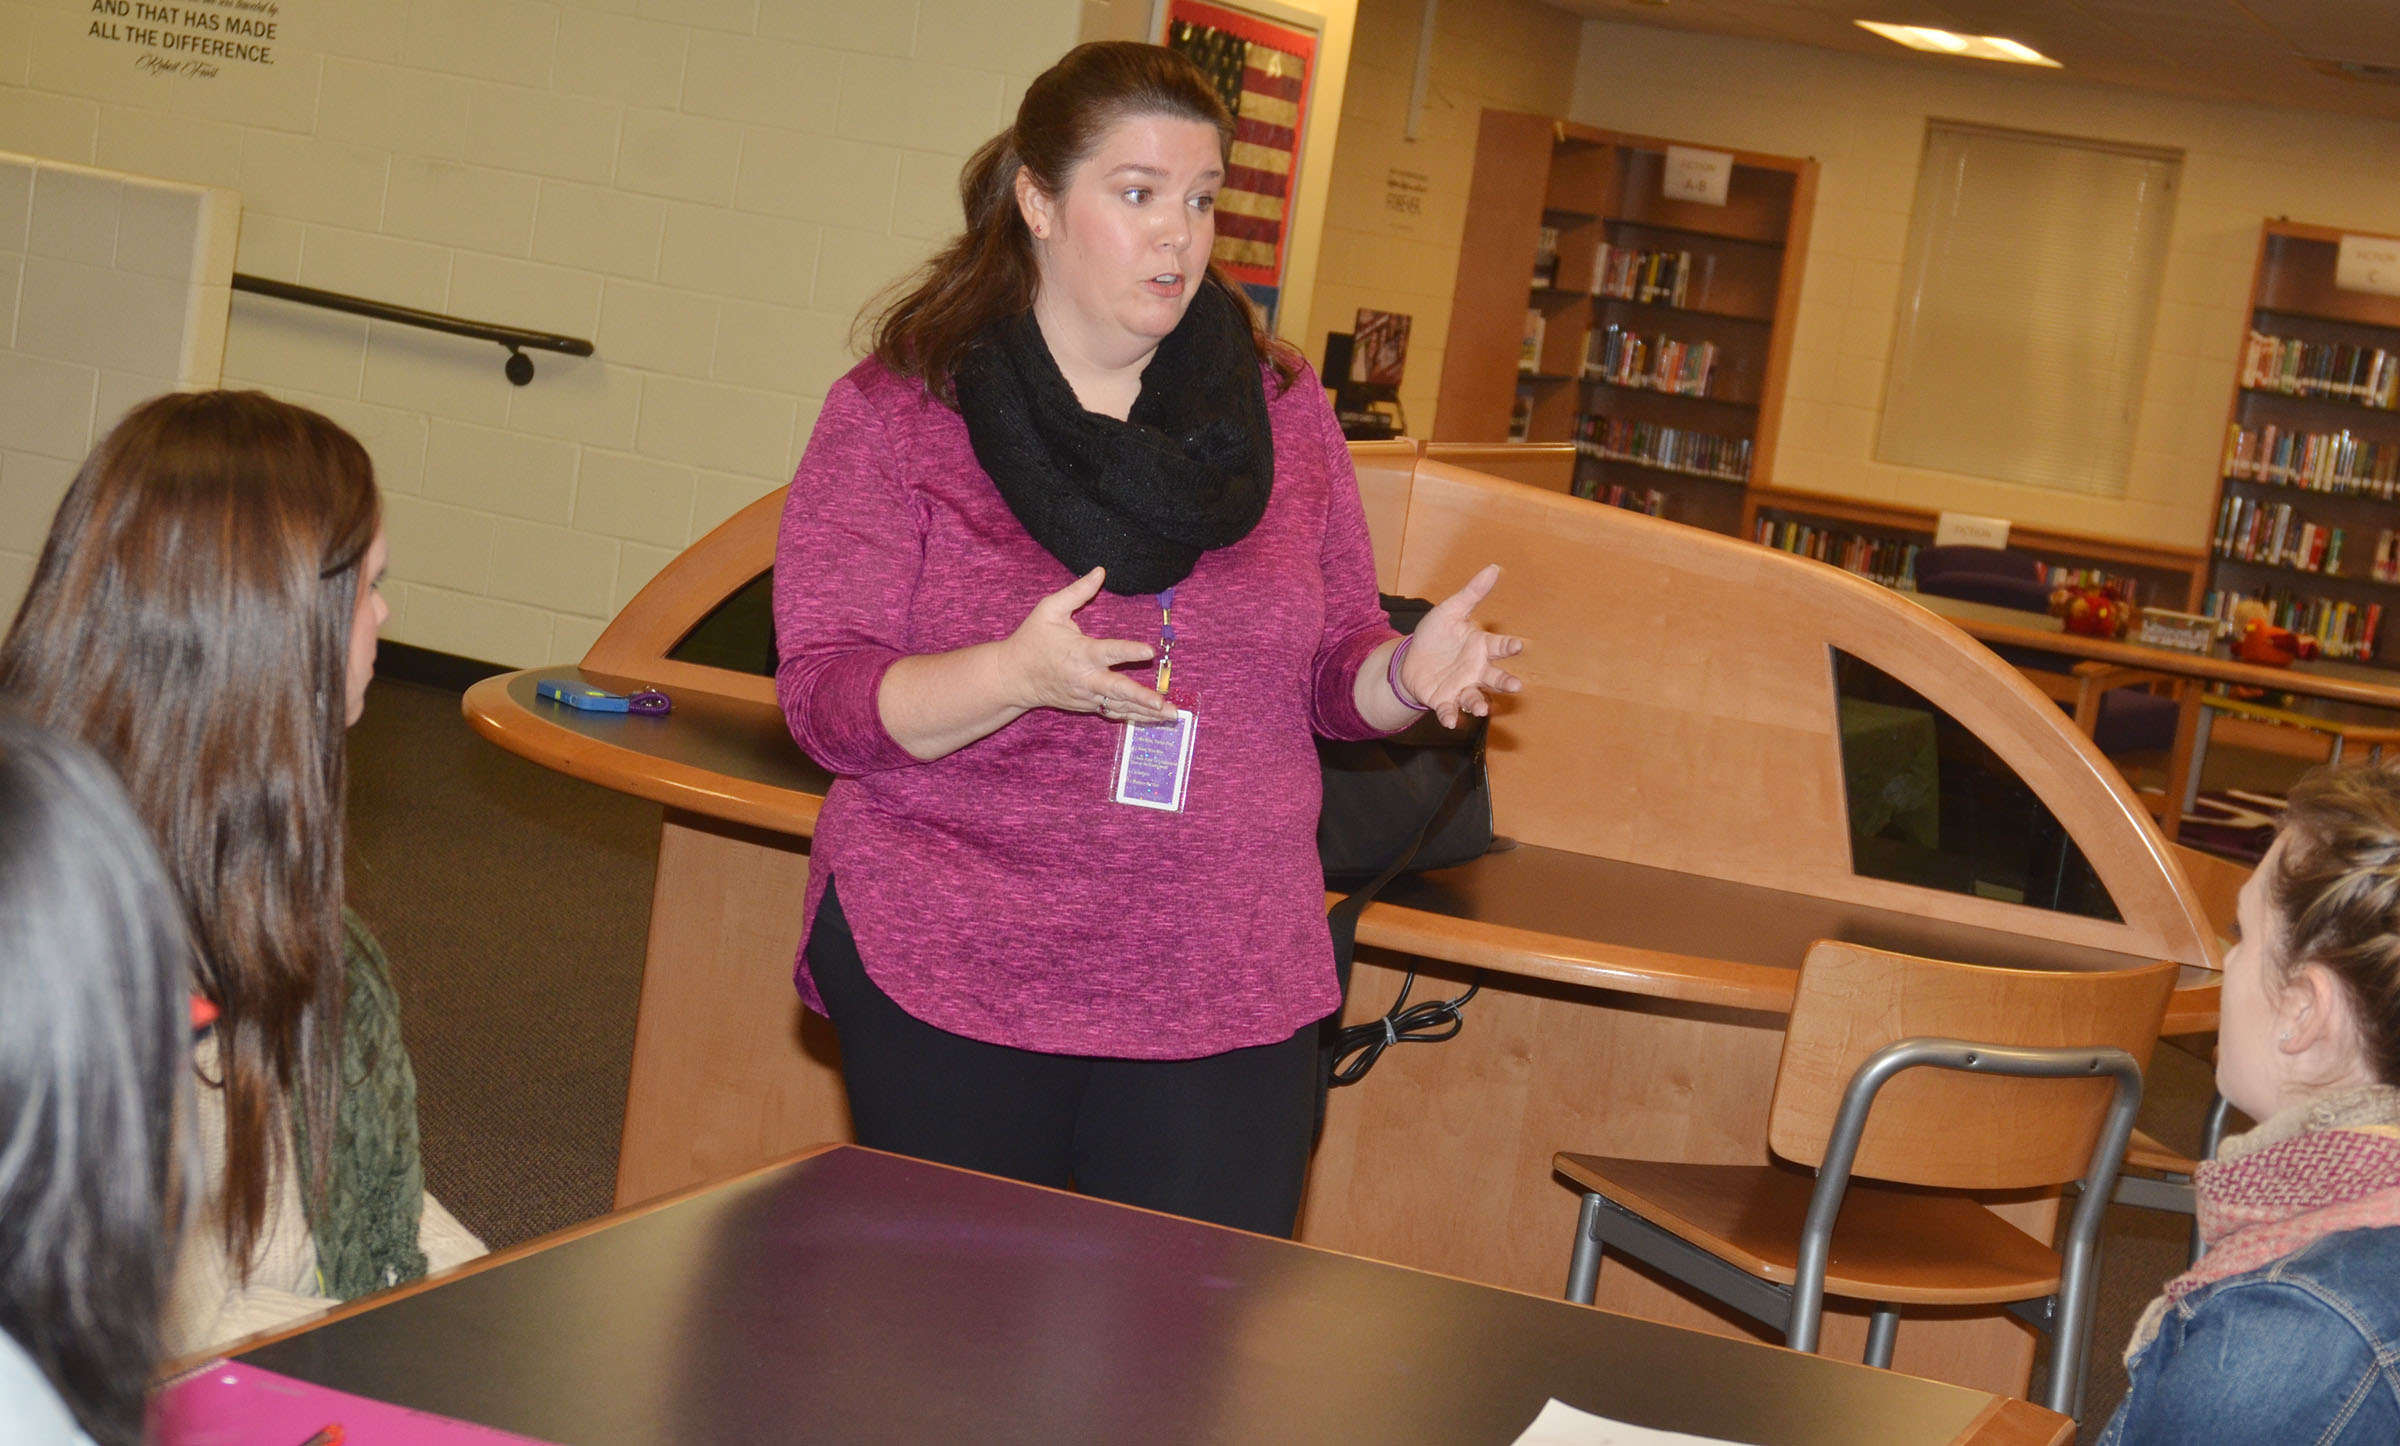 CMS Guidance Counselor Beth Wiedewitsch talks to CU education students.